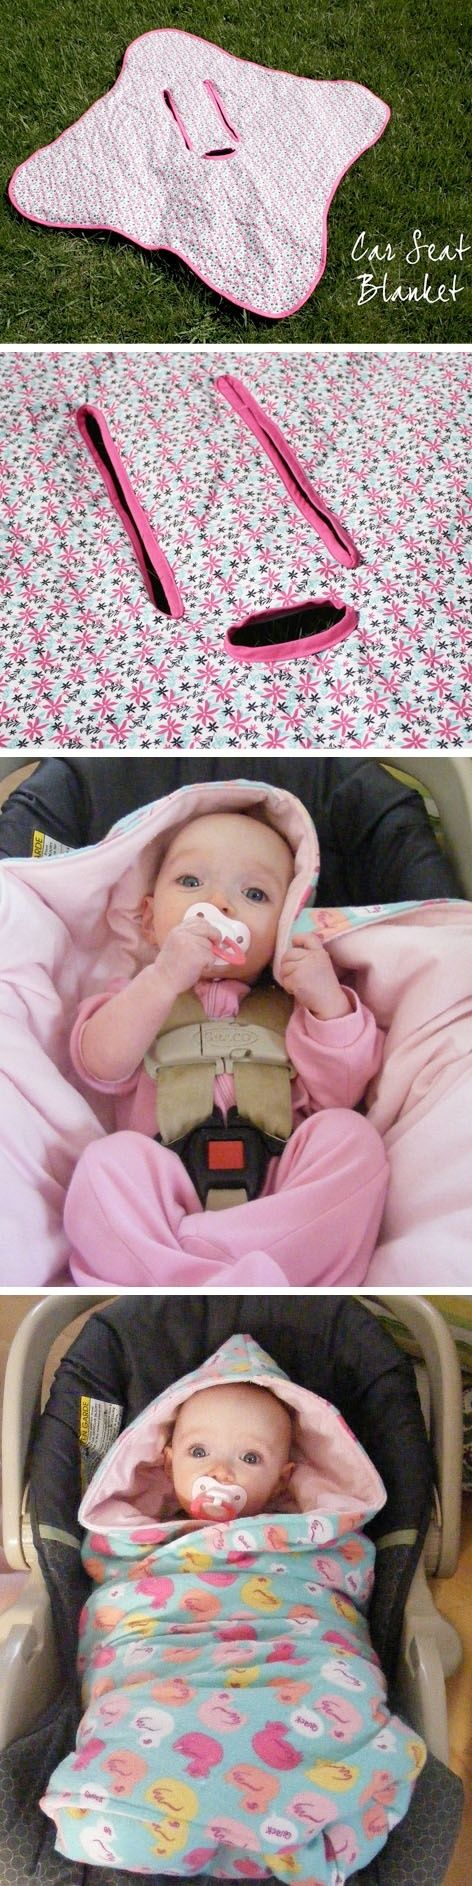 Genius DIY: Baby car seat blanket Clever idea to remember for next time!.